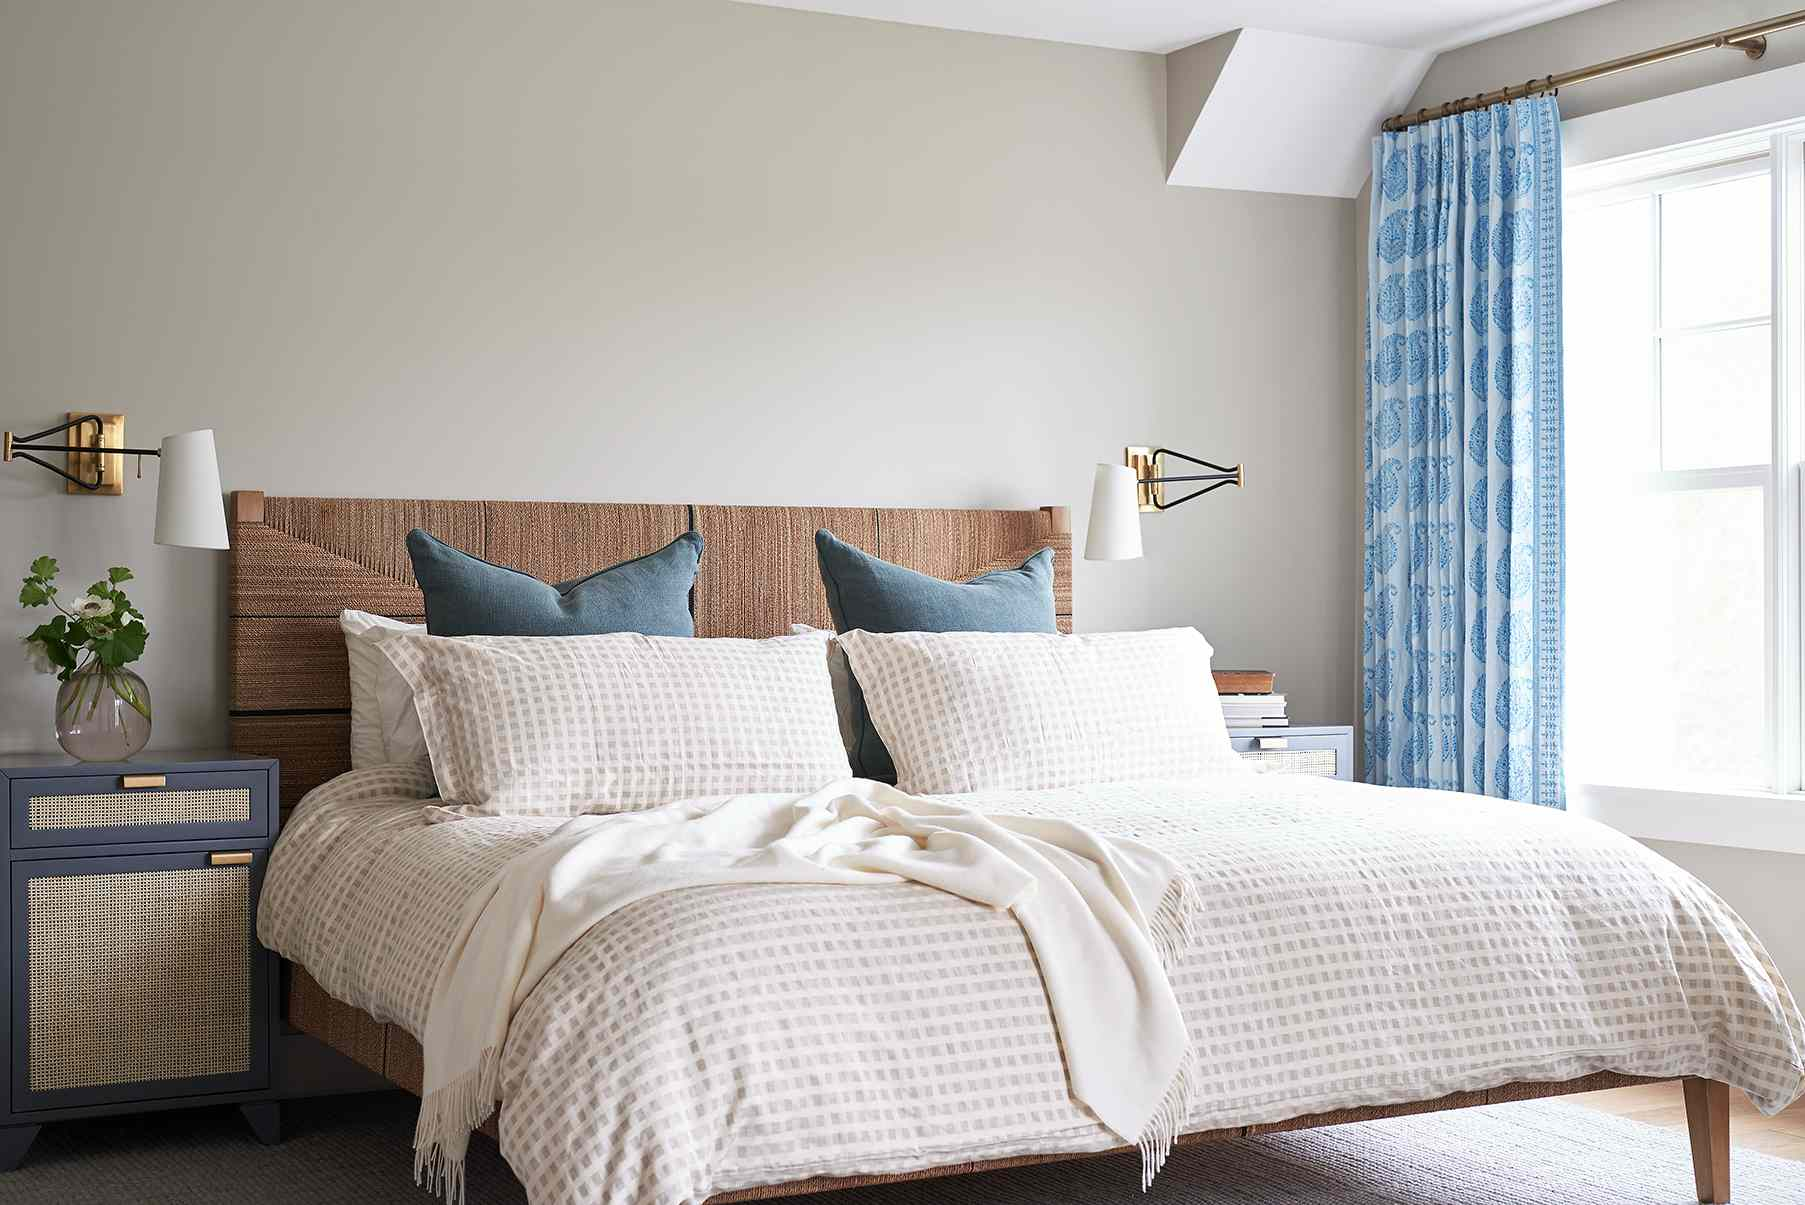 Modern, fresh bedroom with taupe-gray walls and blue and cream accents